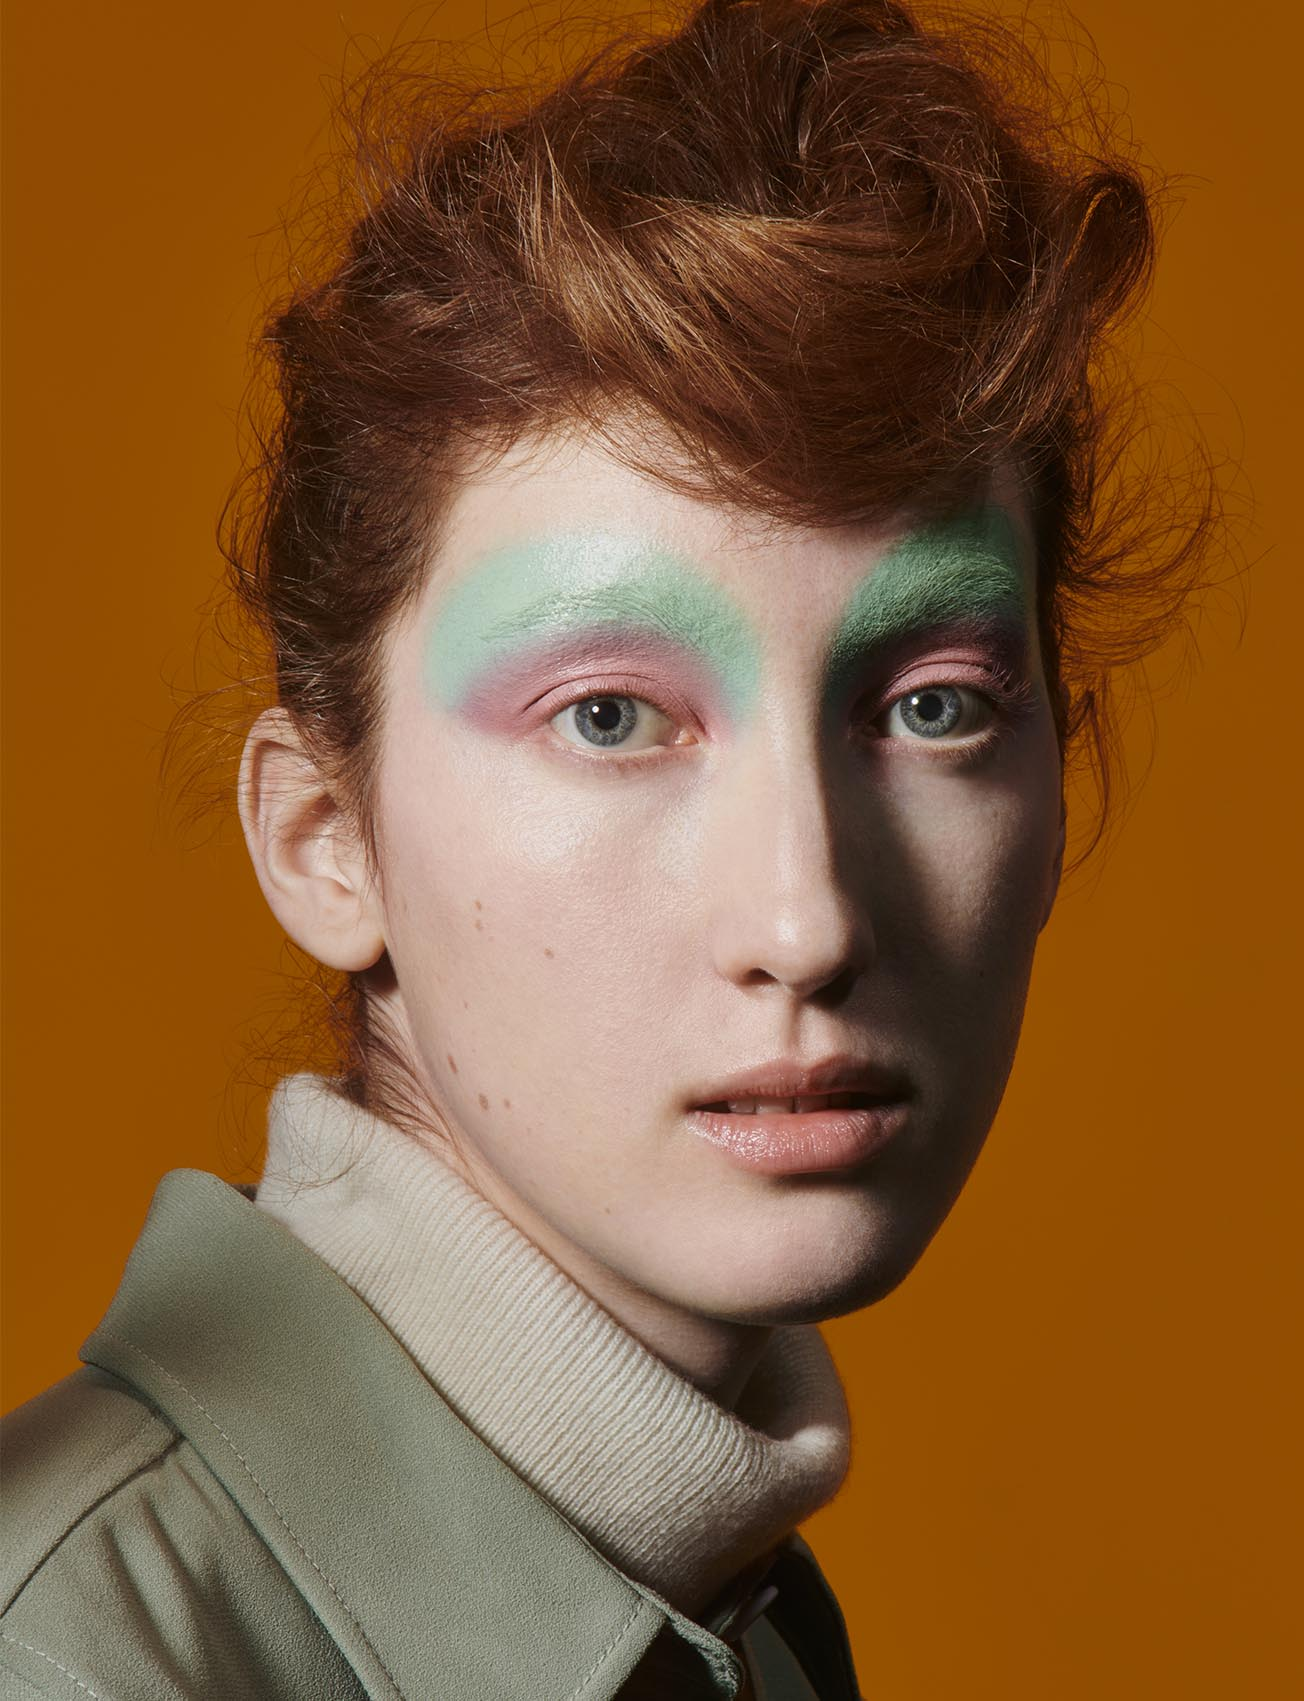 colour-that-does-not-discriminate-8-marblemagazine.jpg